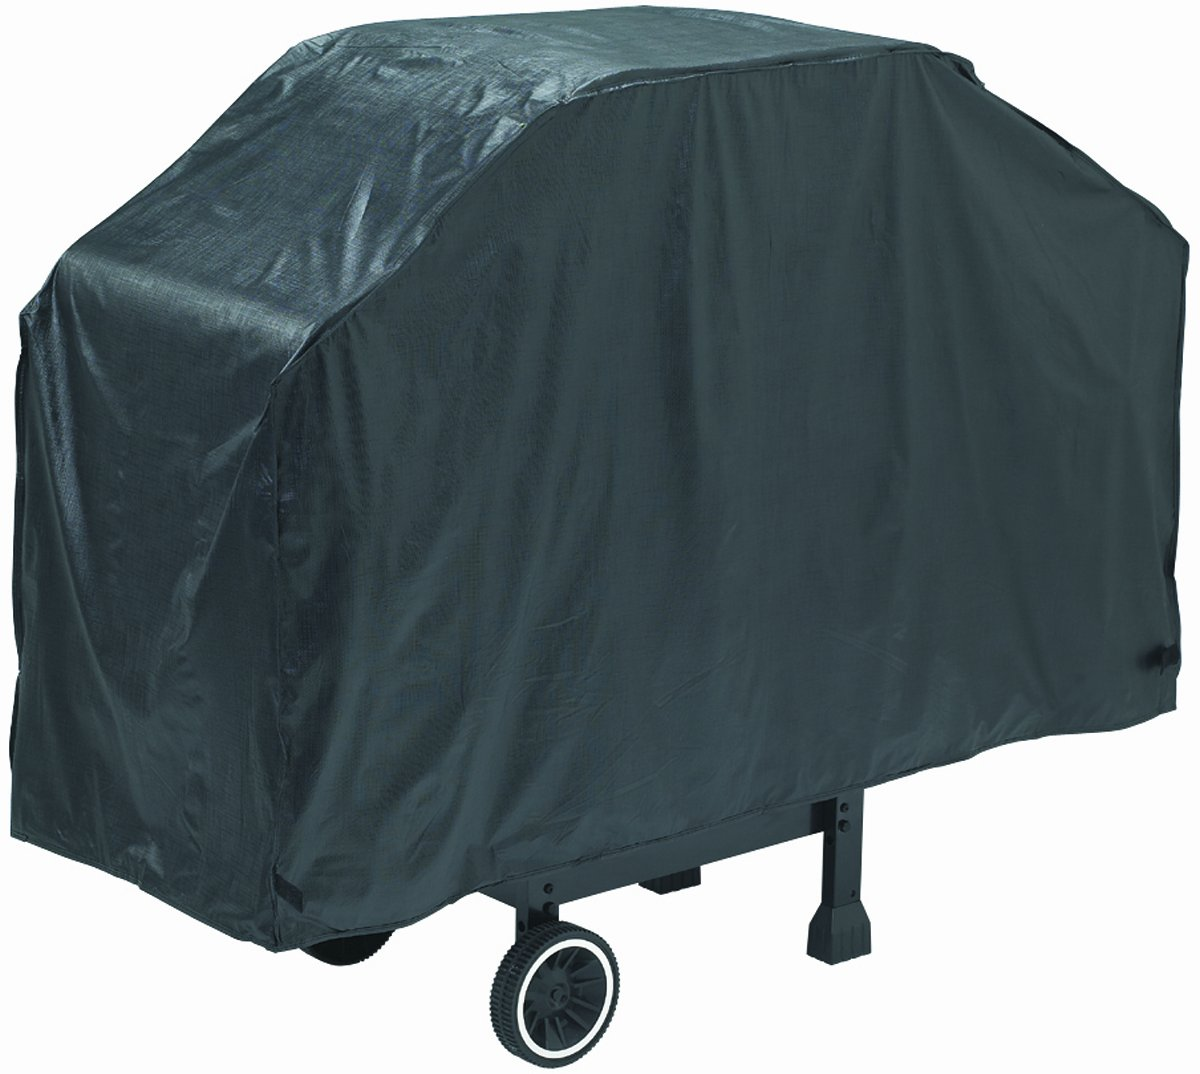 GrillPro 50052 Heavy Duty 51-Inch Grill Cover JD08224974-08224974